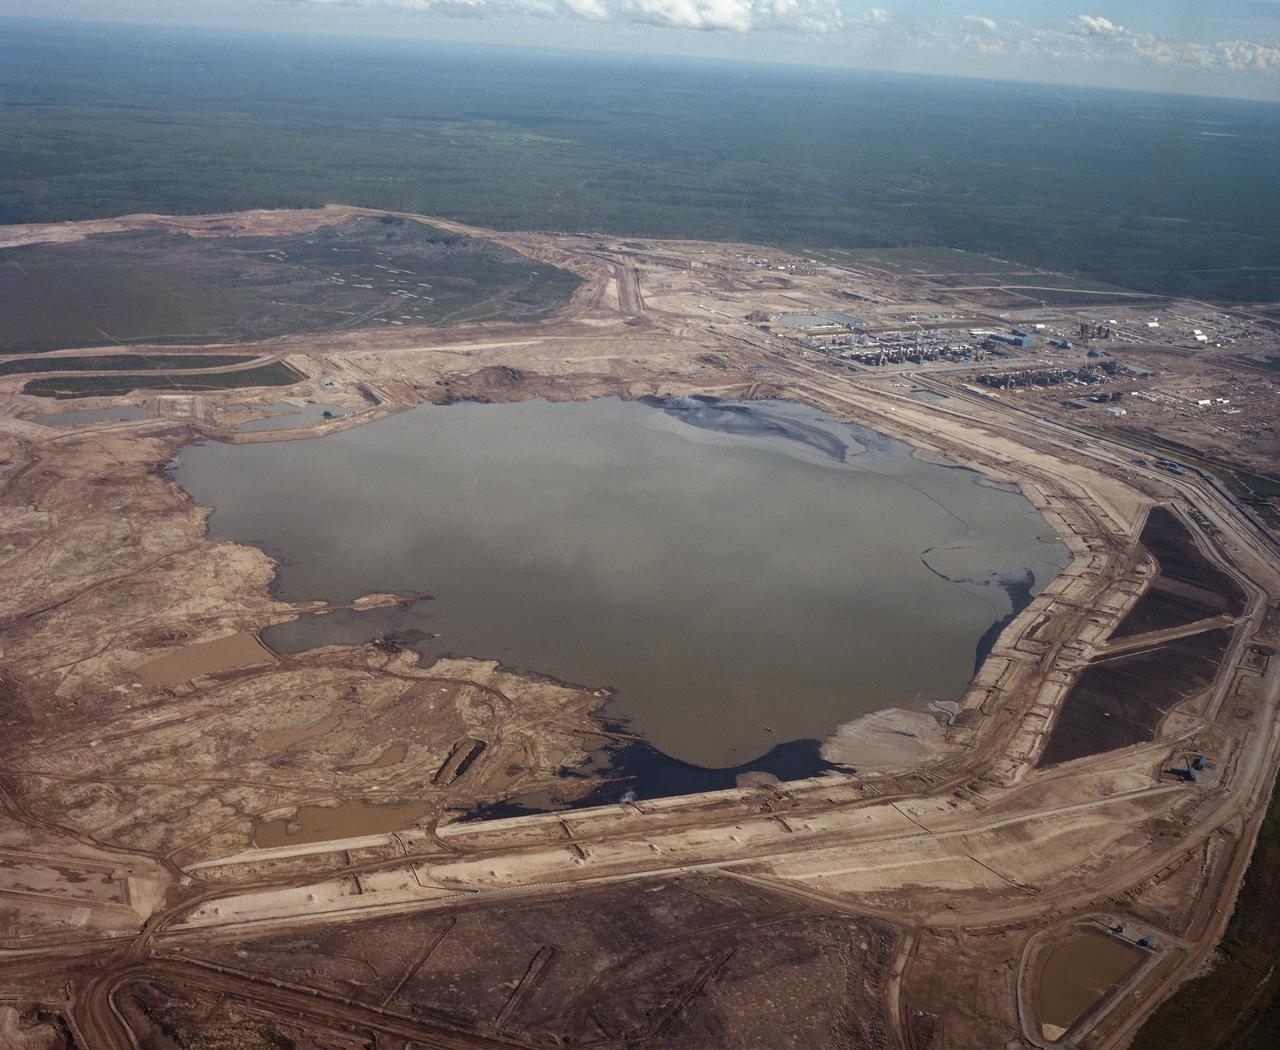 A tailings pond, which holds wastewater left over from the mining process